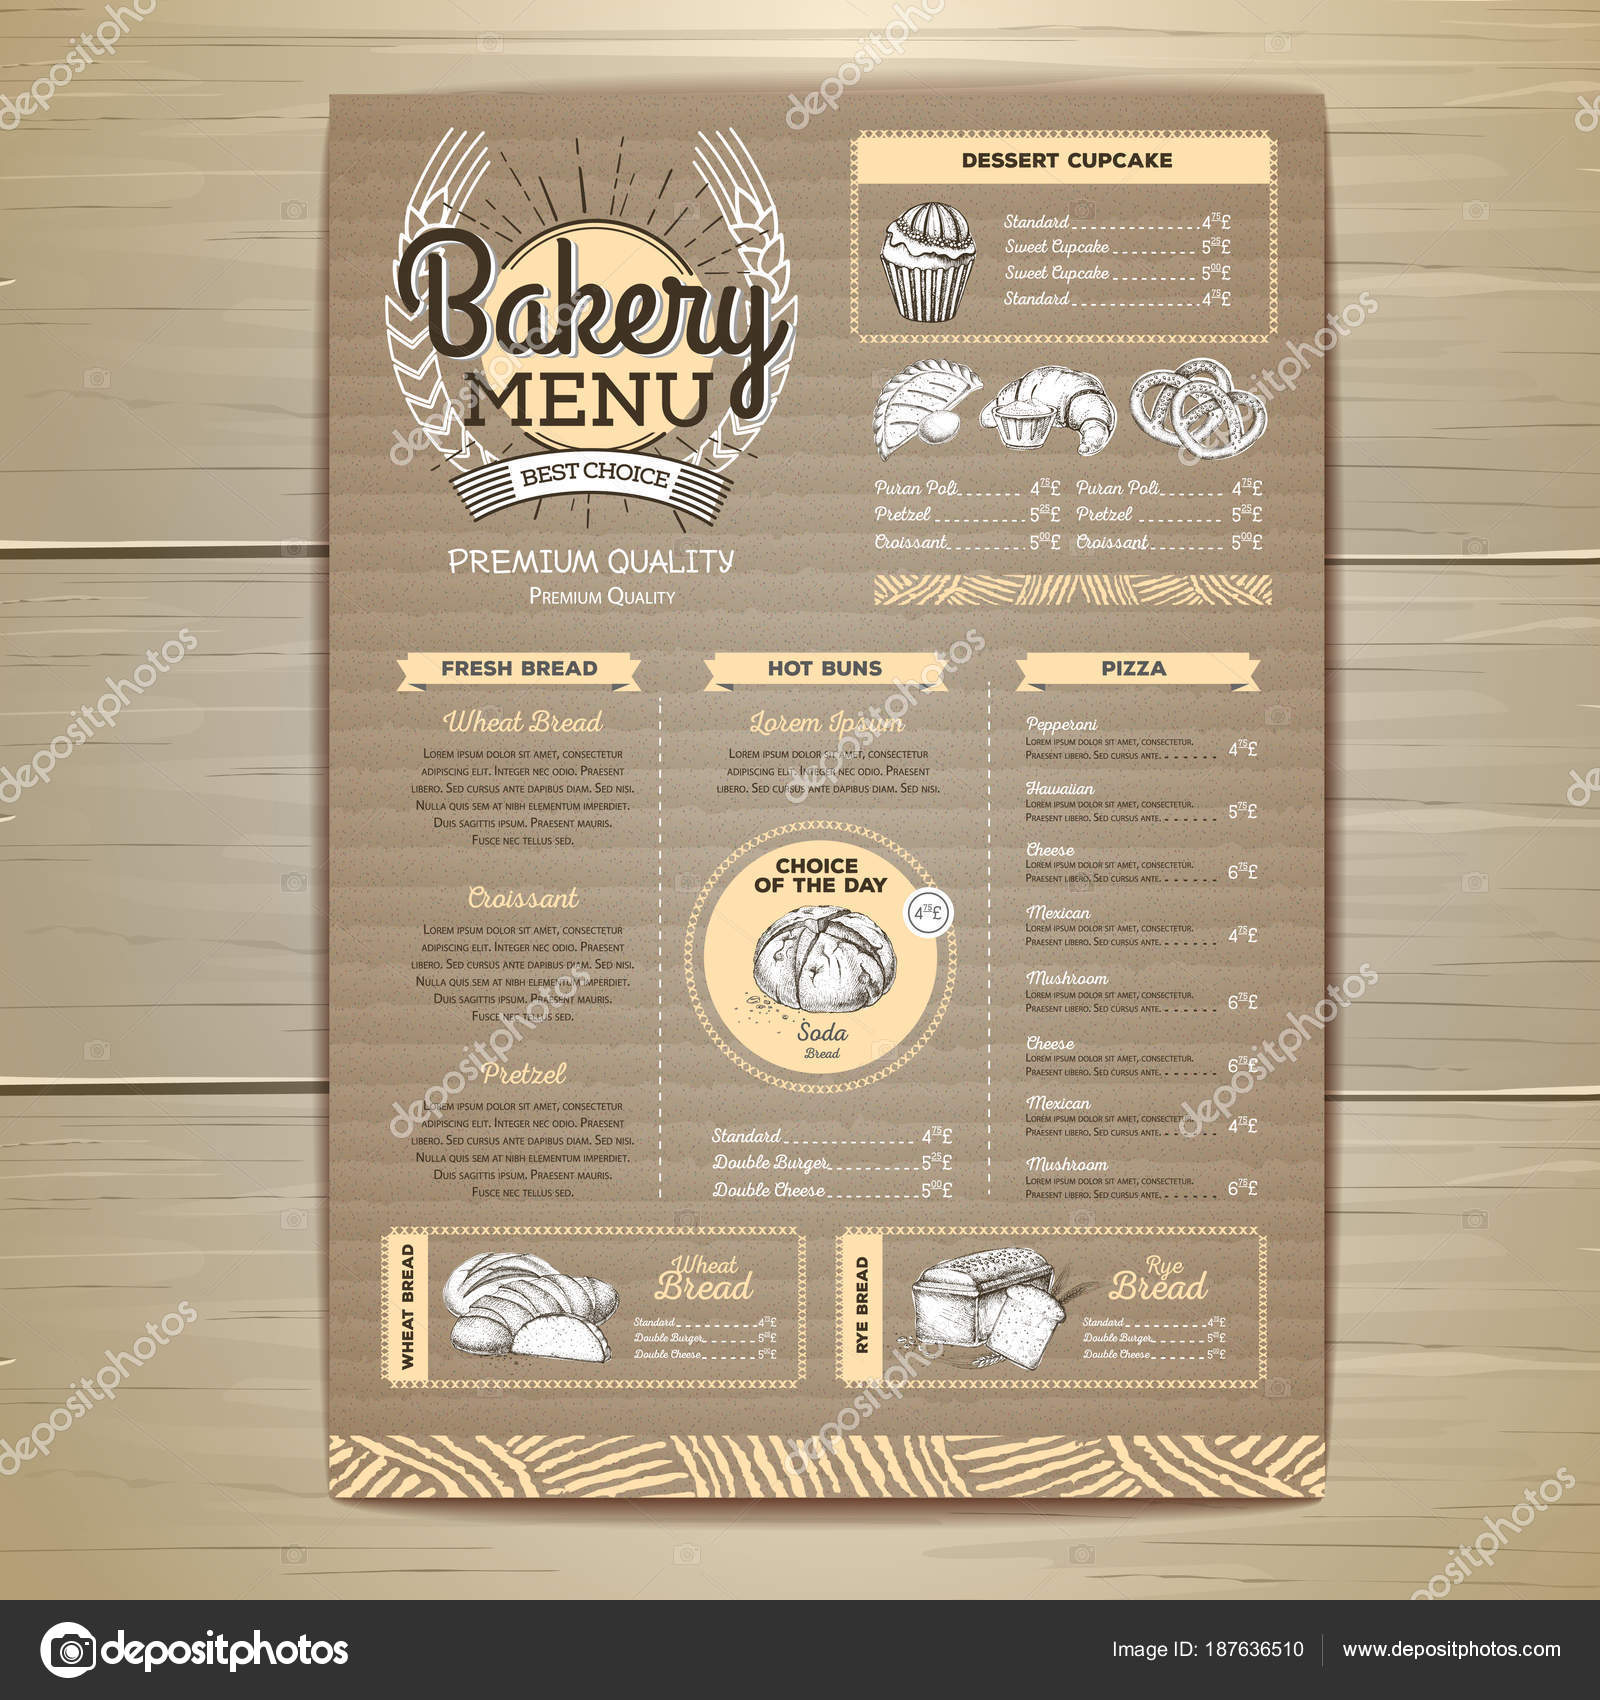 Vintage bakery menu design on cardboard background restaurant menu vintage bakery menu design on cardboard background restaurant menu stock vector thecheapjerseys Images